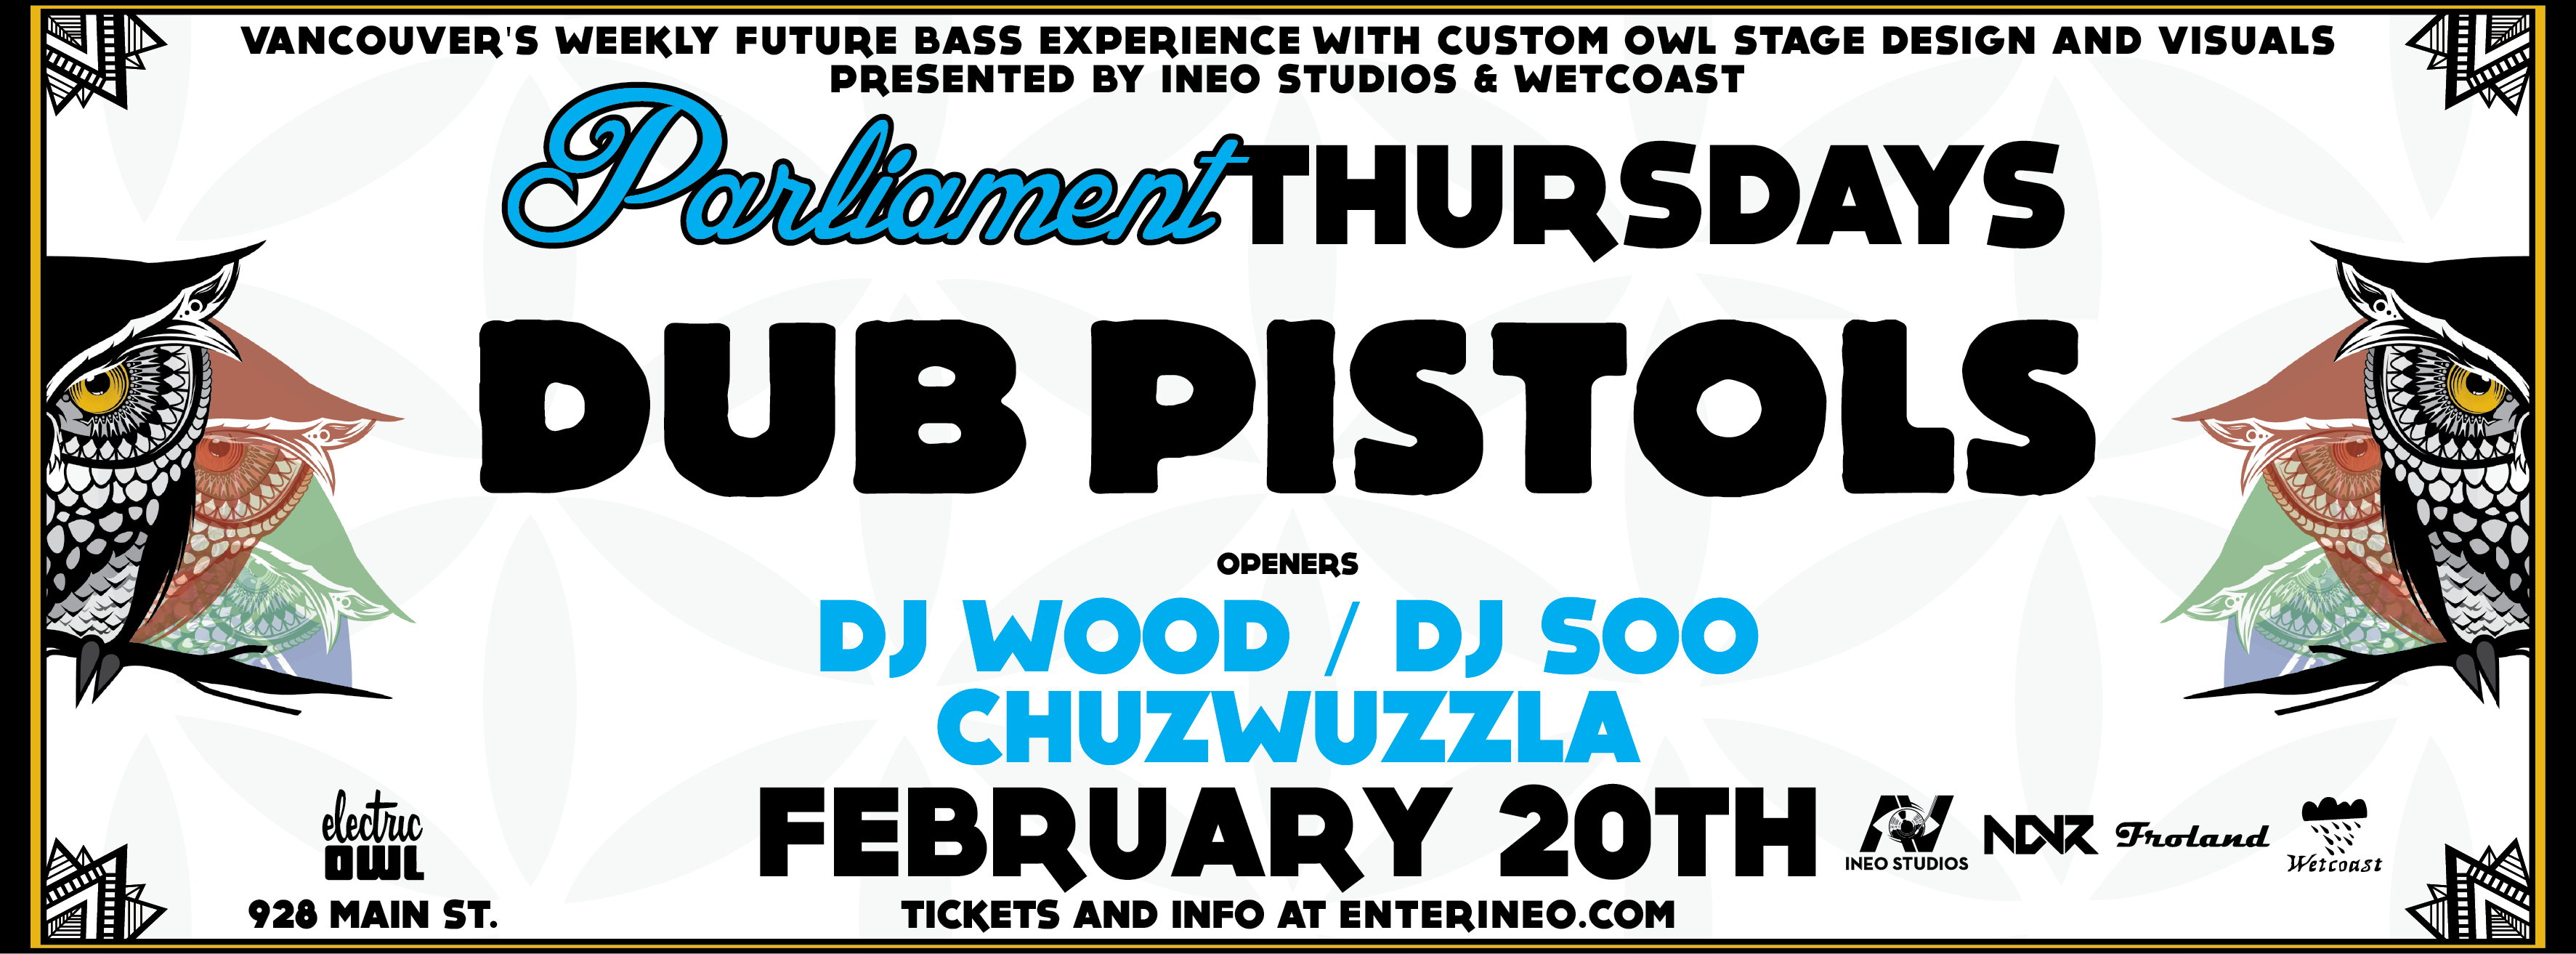 6 Parliament Thursdays FB Banner DUB PISTOLS-01